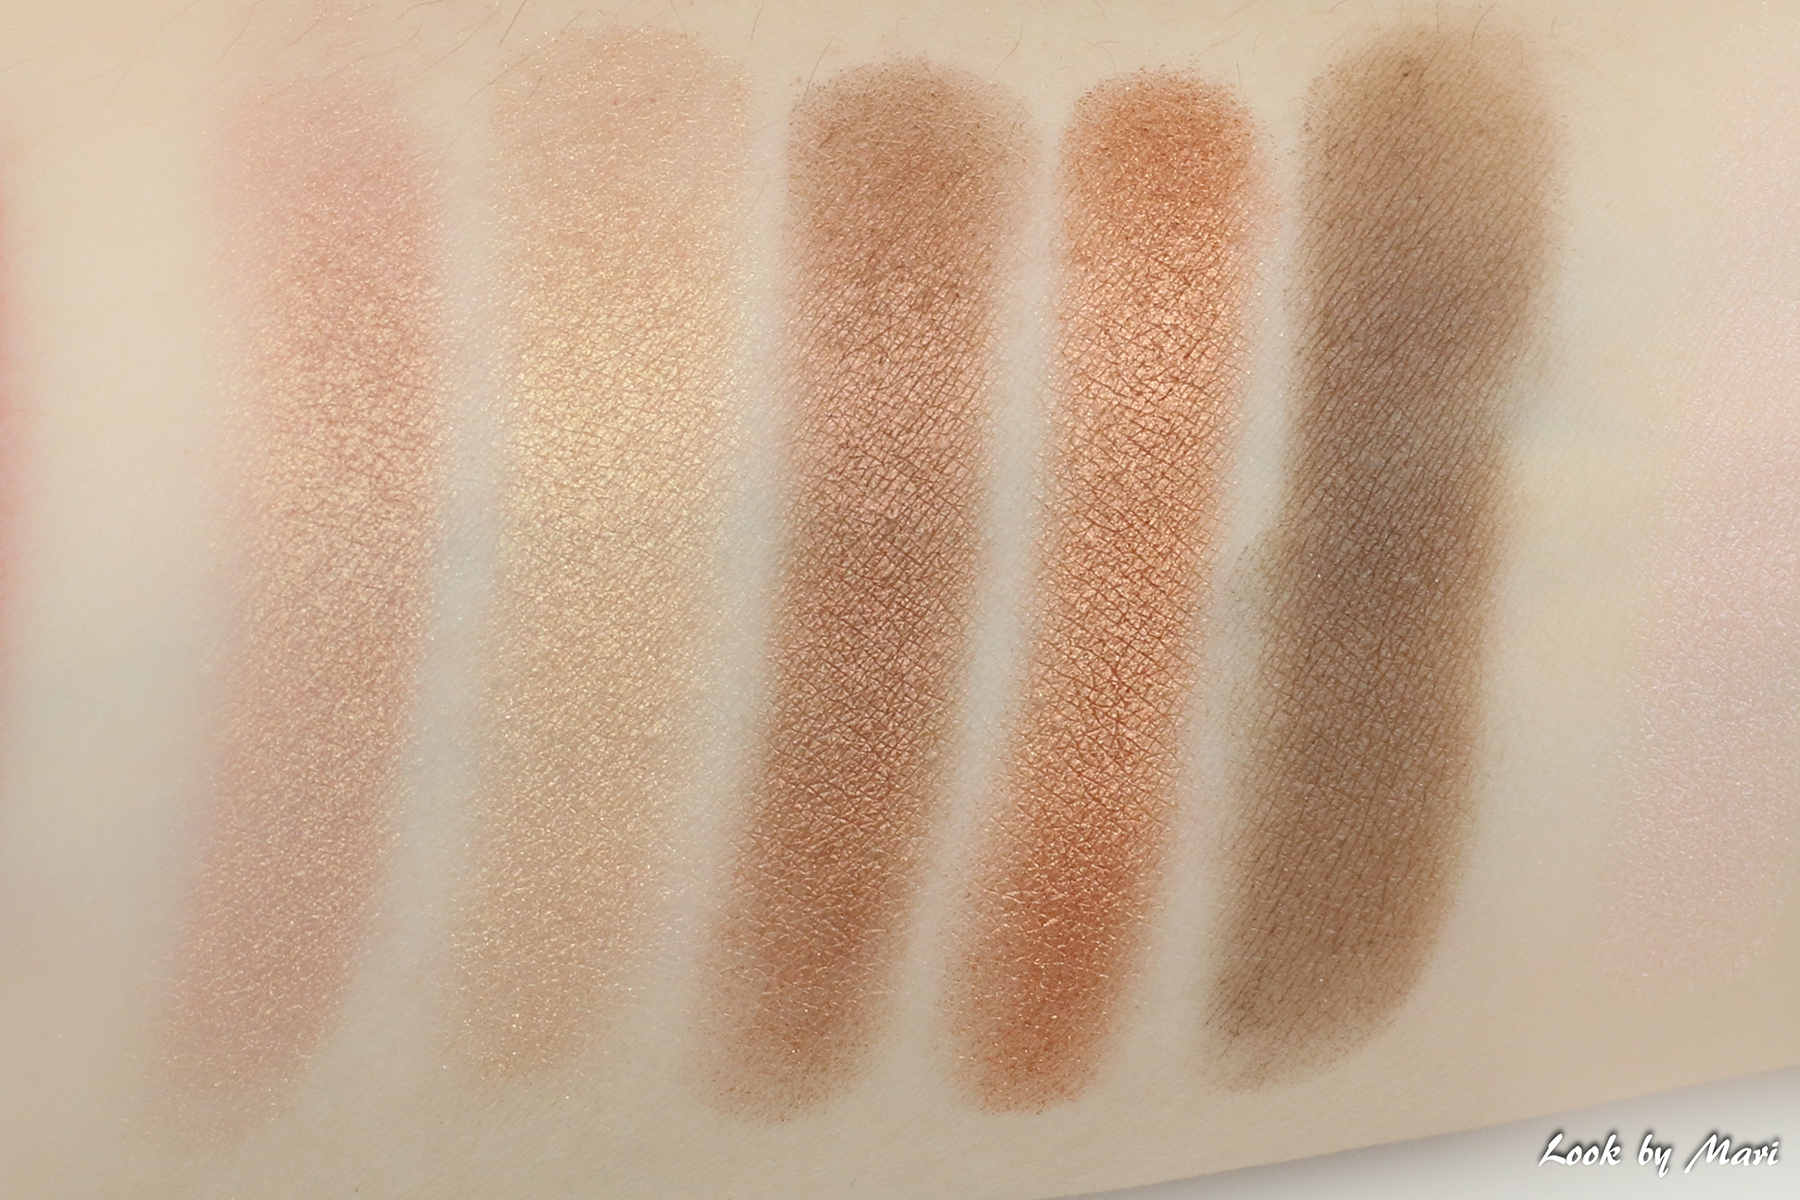 12 bh cosmetics carli bybel eyeshadow palette swatches swatch review